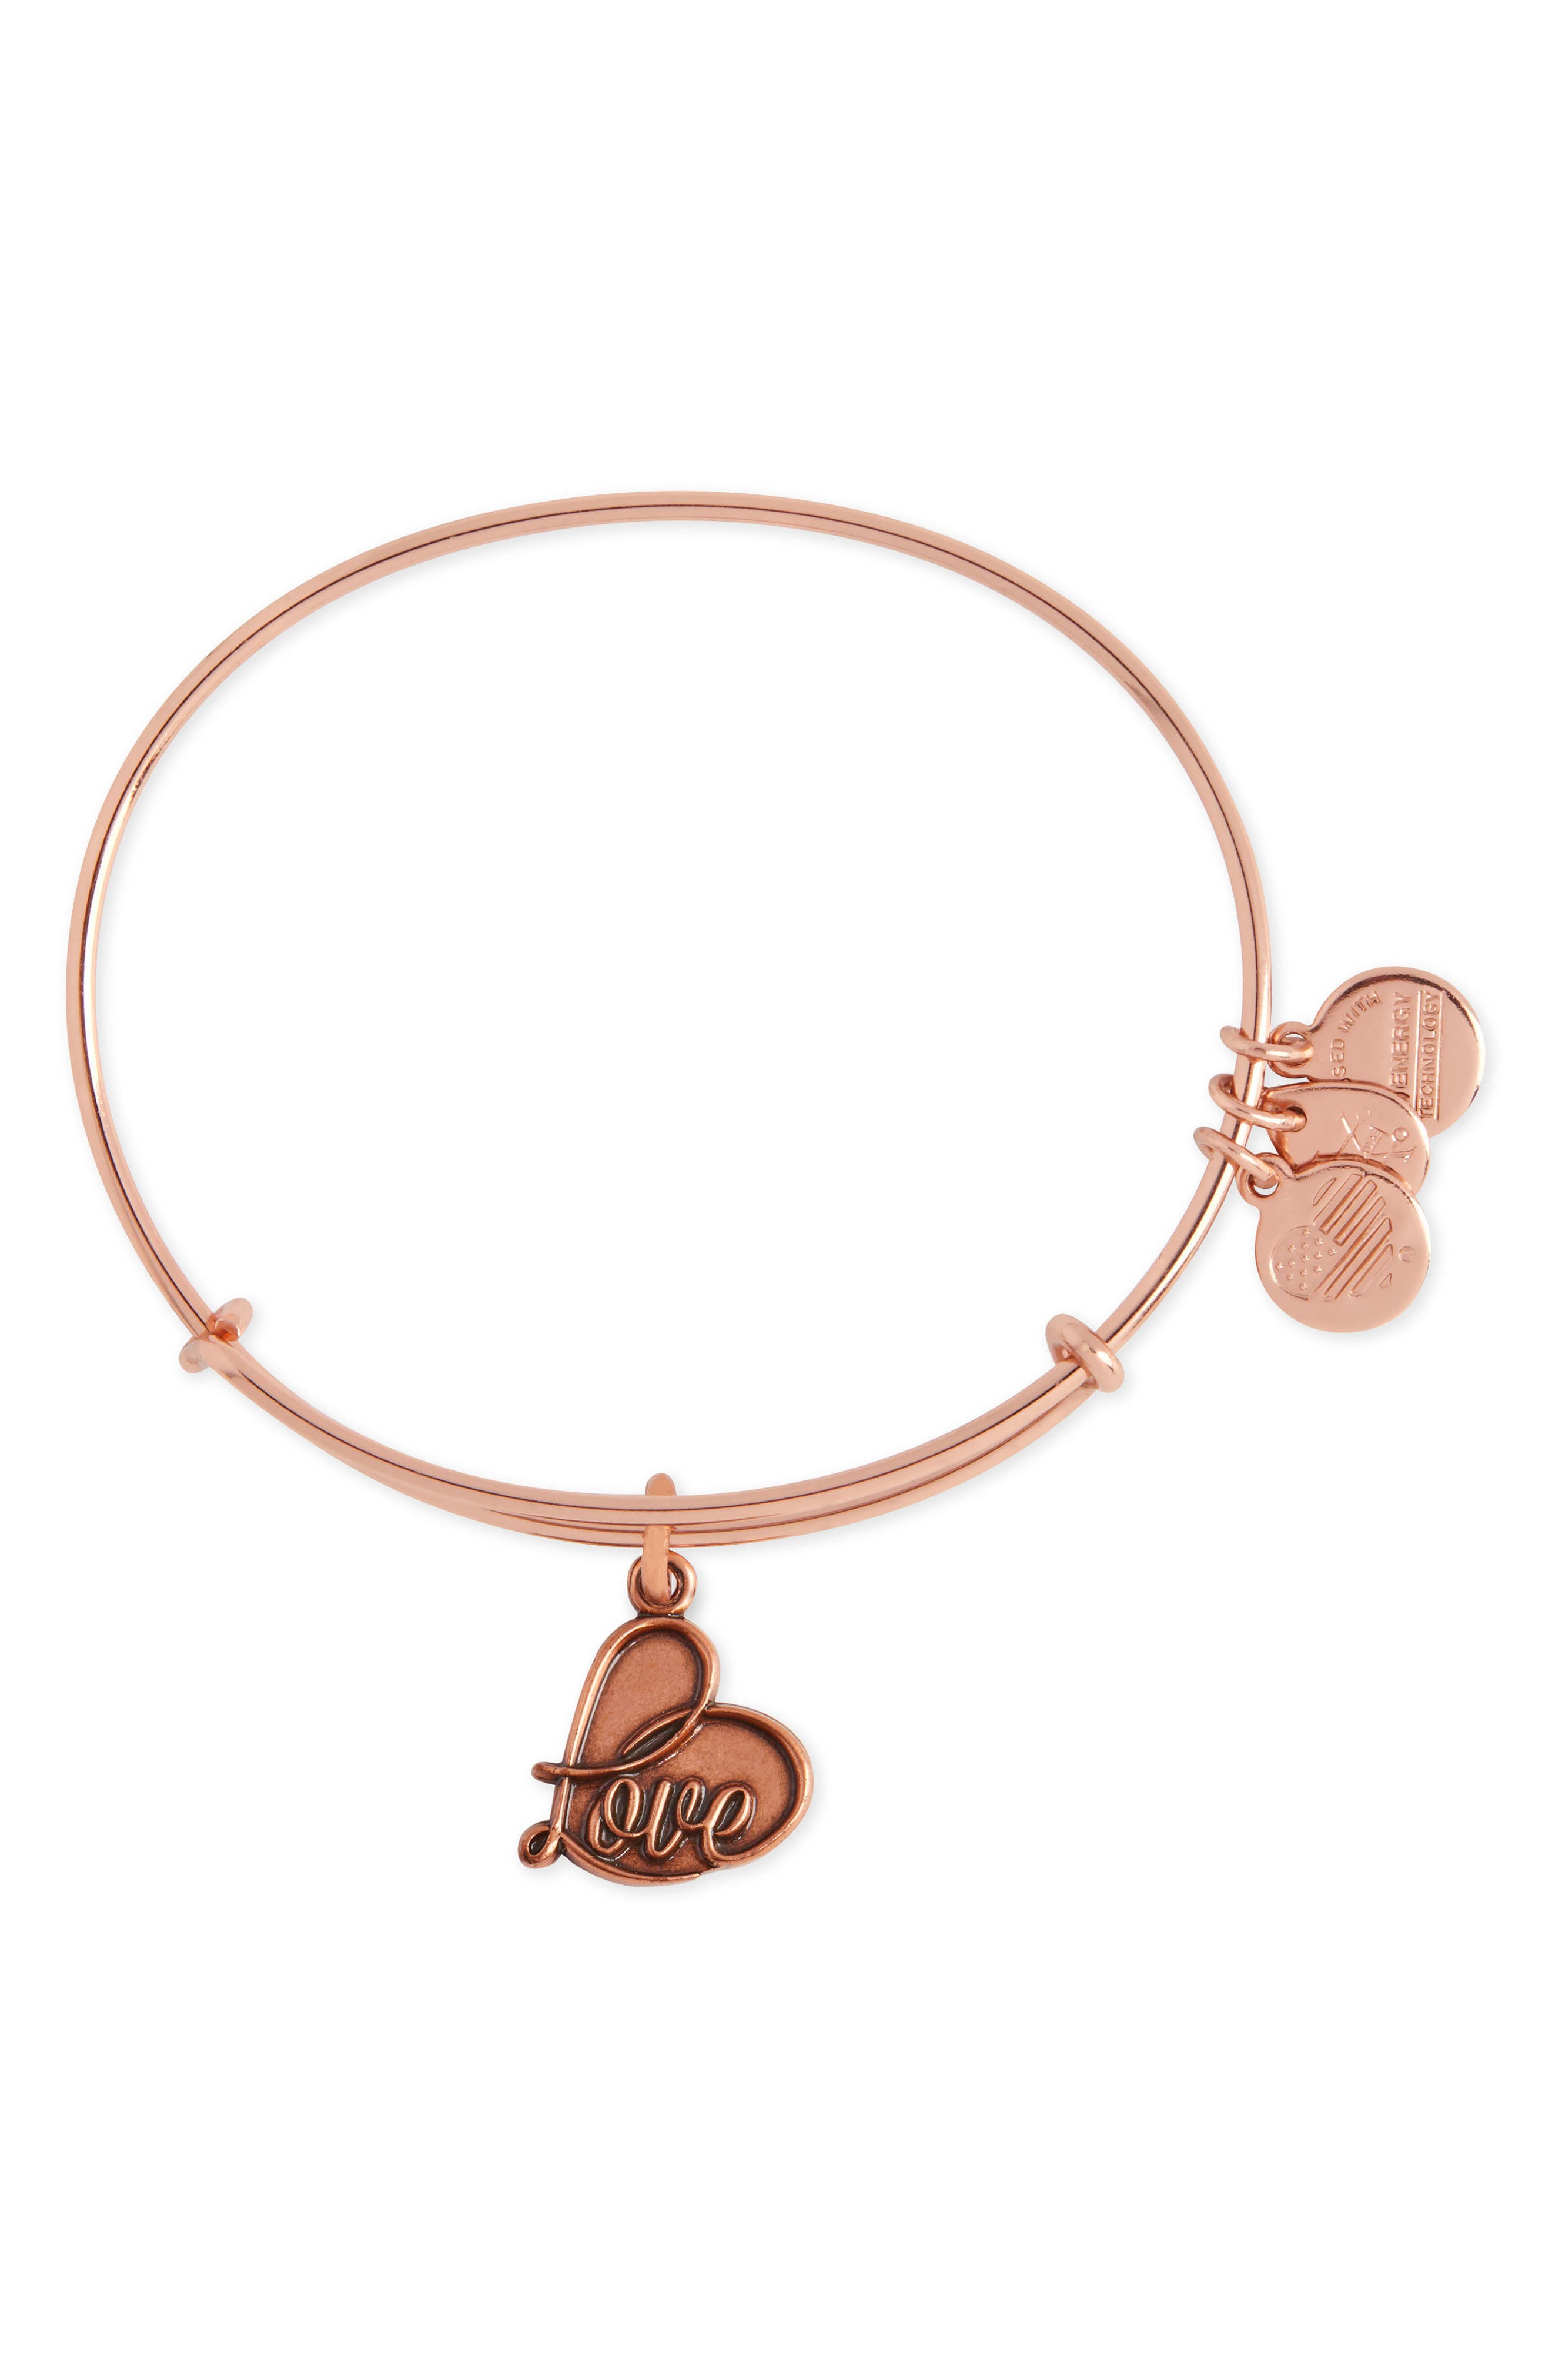 Love IV Adjustable Wire Bangle,                             Main thumbnail 1, color,                             ROSE GOLD